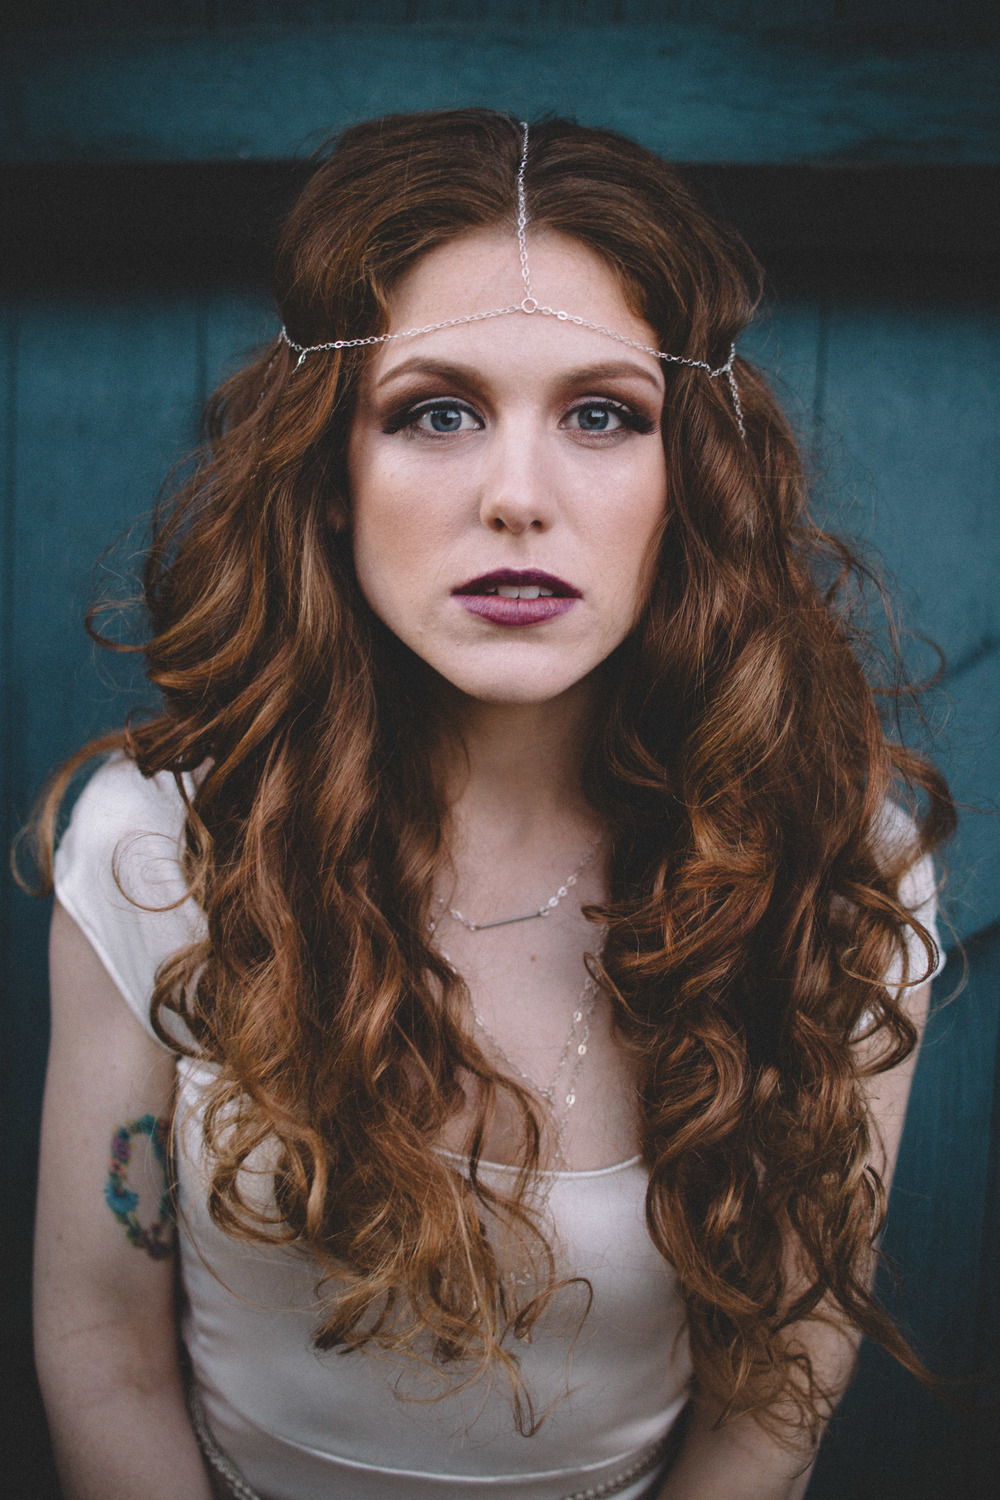 ashley in the kaia fang headpiece, remy necklace, & amoret crystal necklace--all sterling silver // photo by amanda kolstedt photography // hair by karen of iloveblush // makeup by bayla artistry